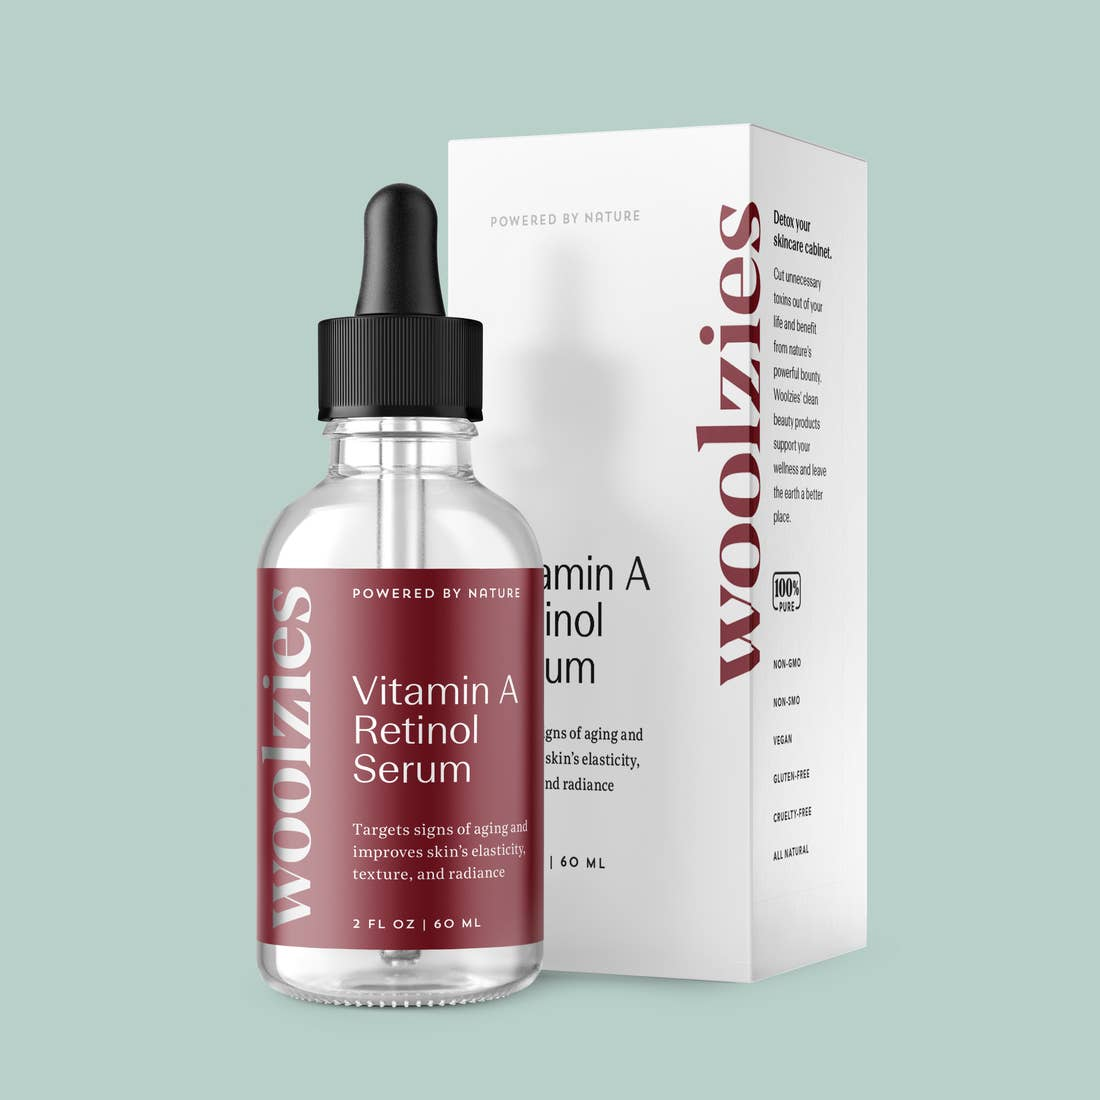 Retinol Serum/Vitamin A